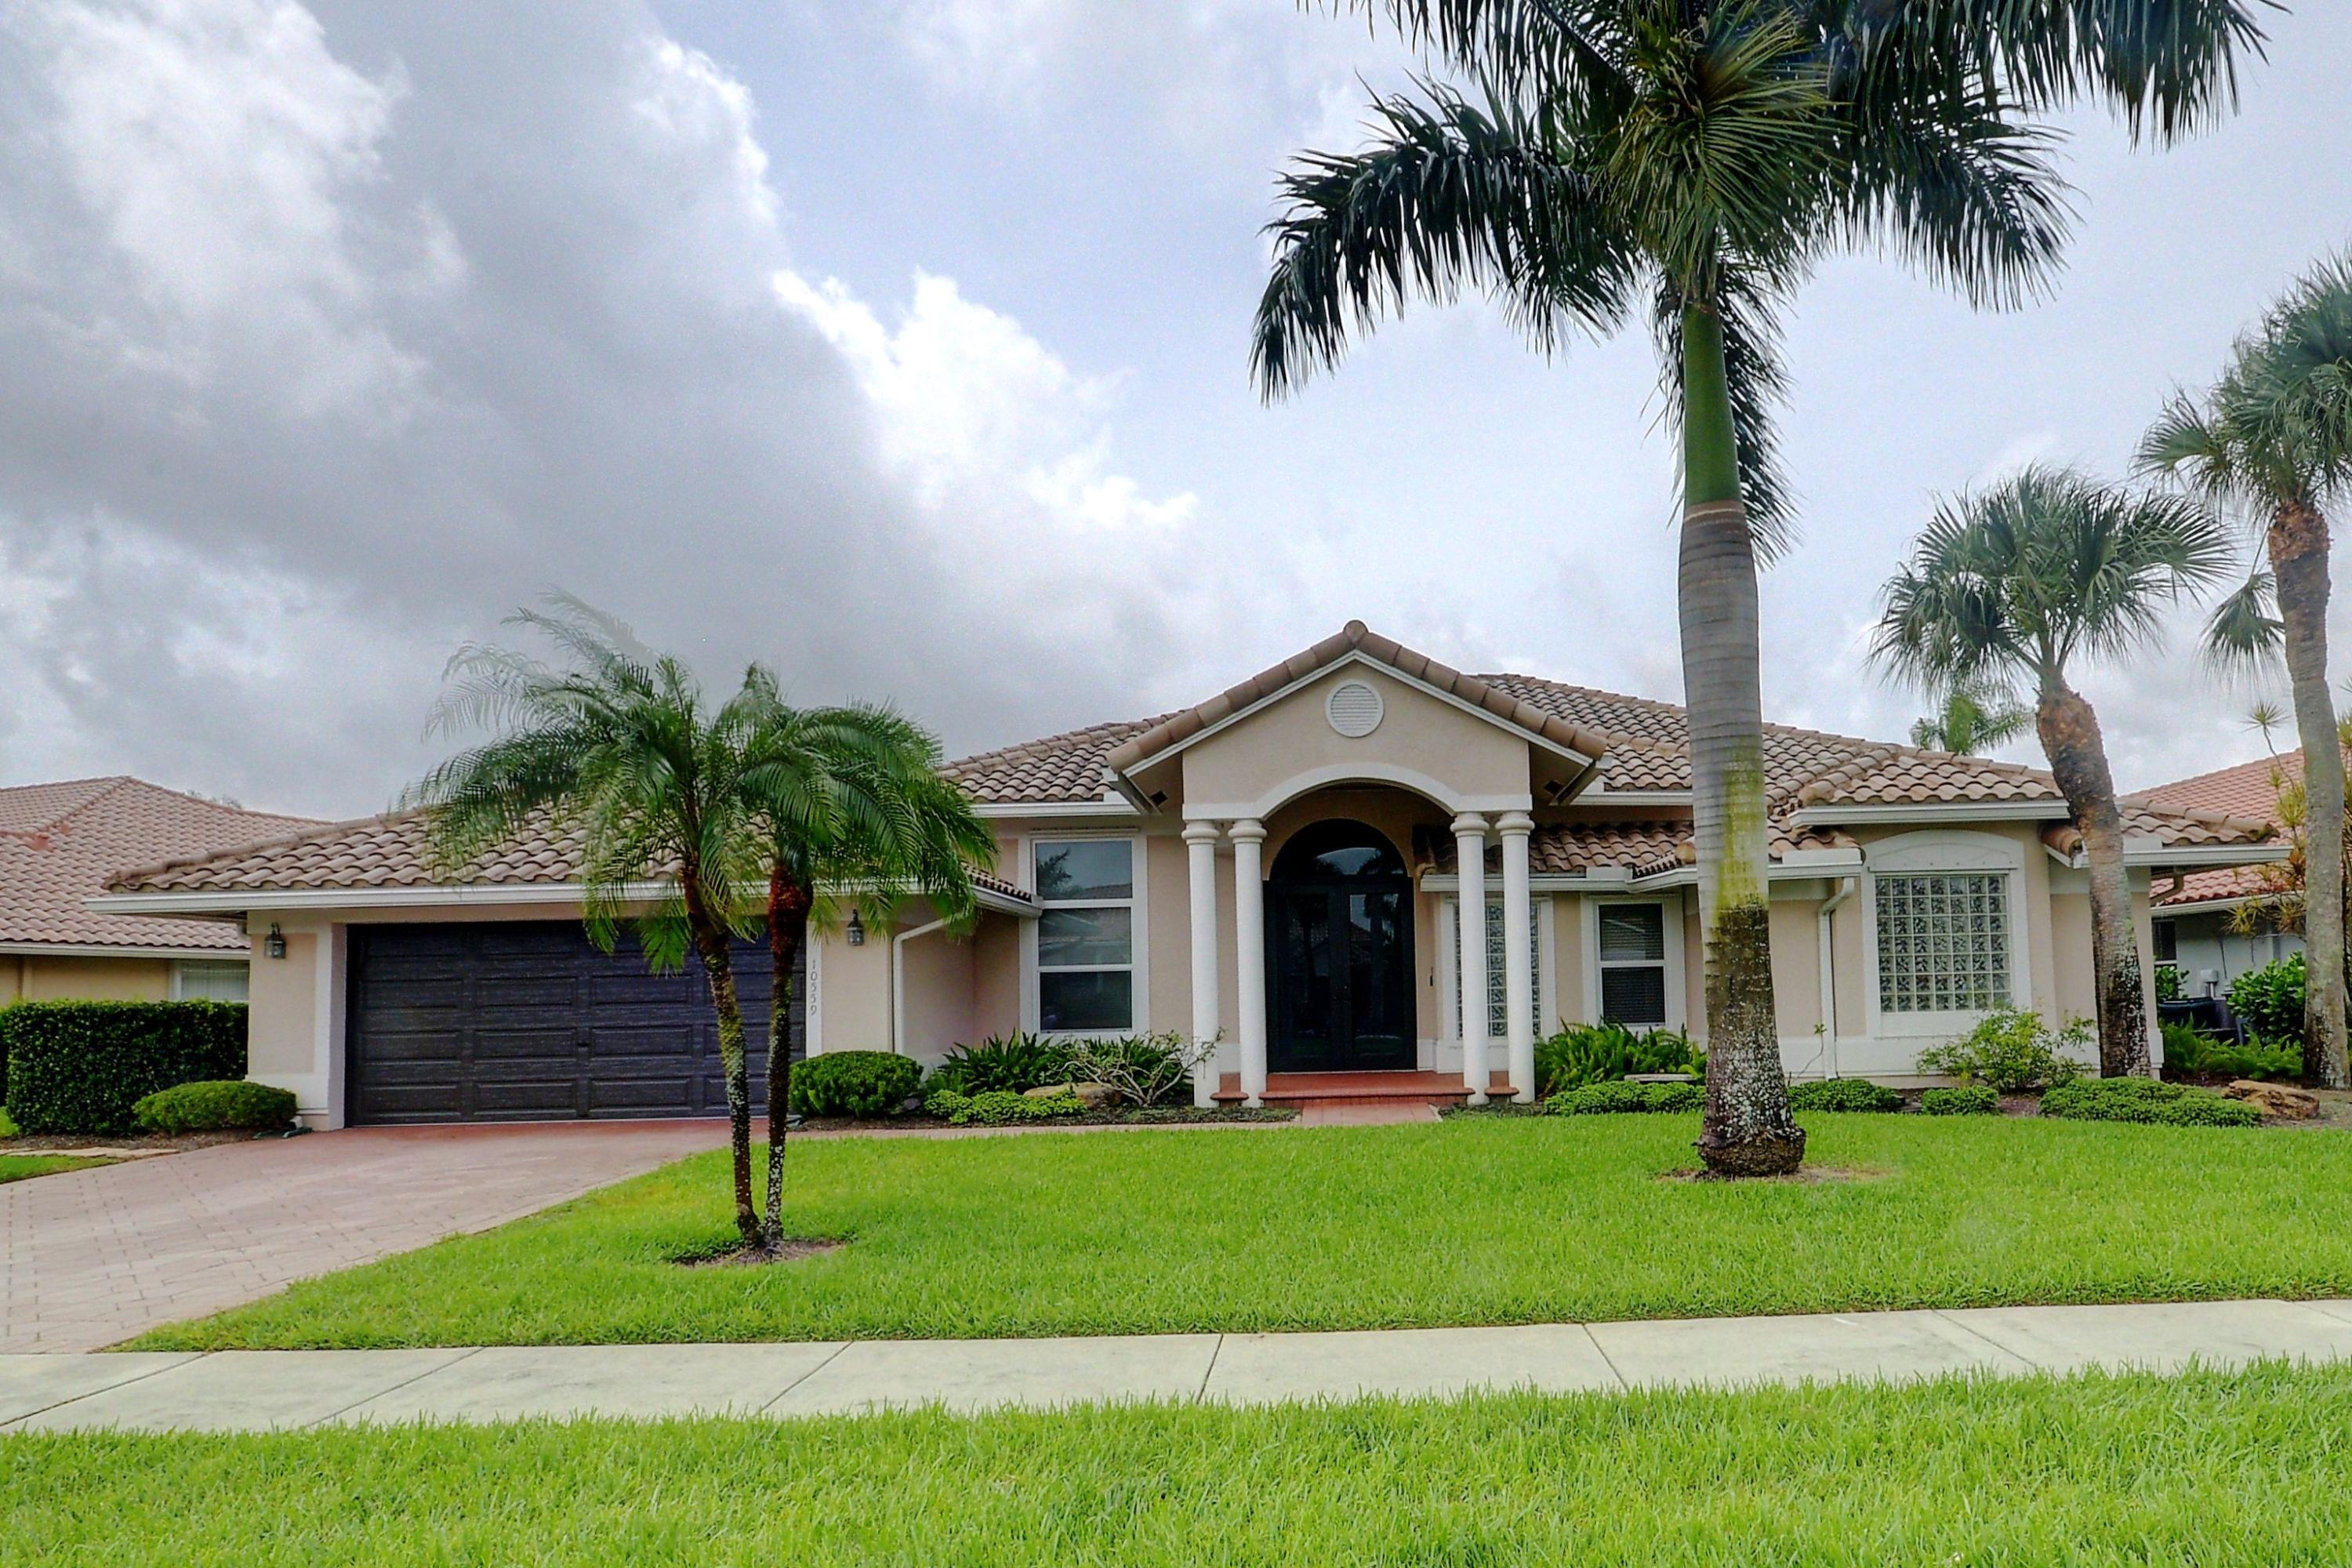 Photo of 10559 Maple Chase Drive, Boca Raton, FL 33498